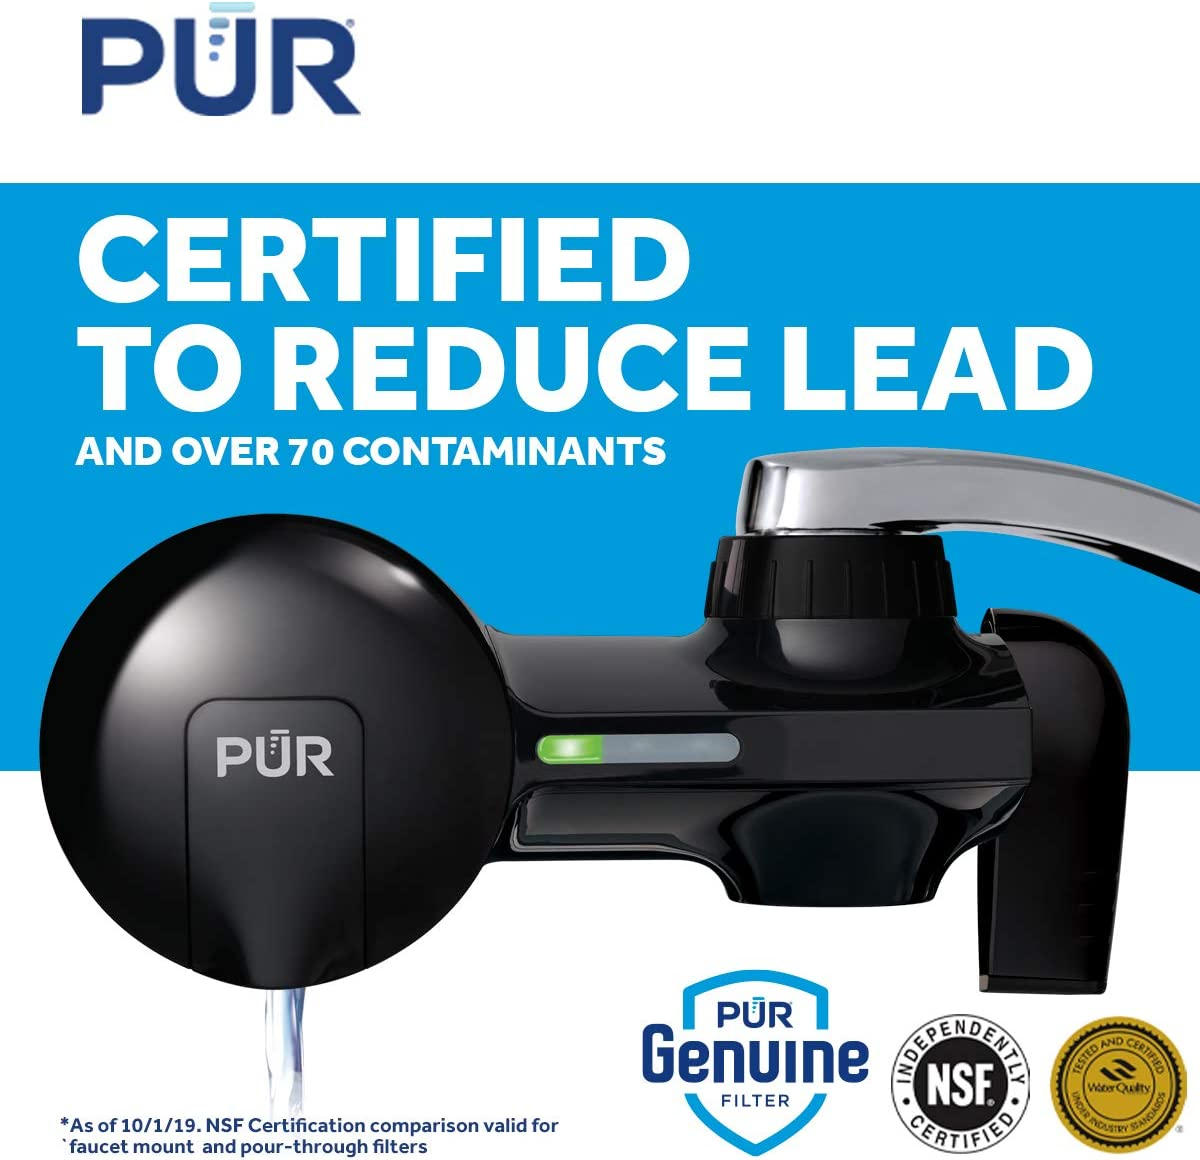 PUR PFM100B Faucet Mount Water Filter - Certified to reduce lead